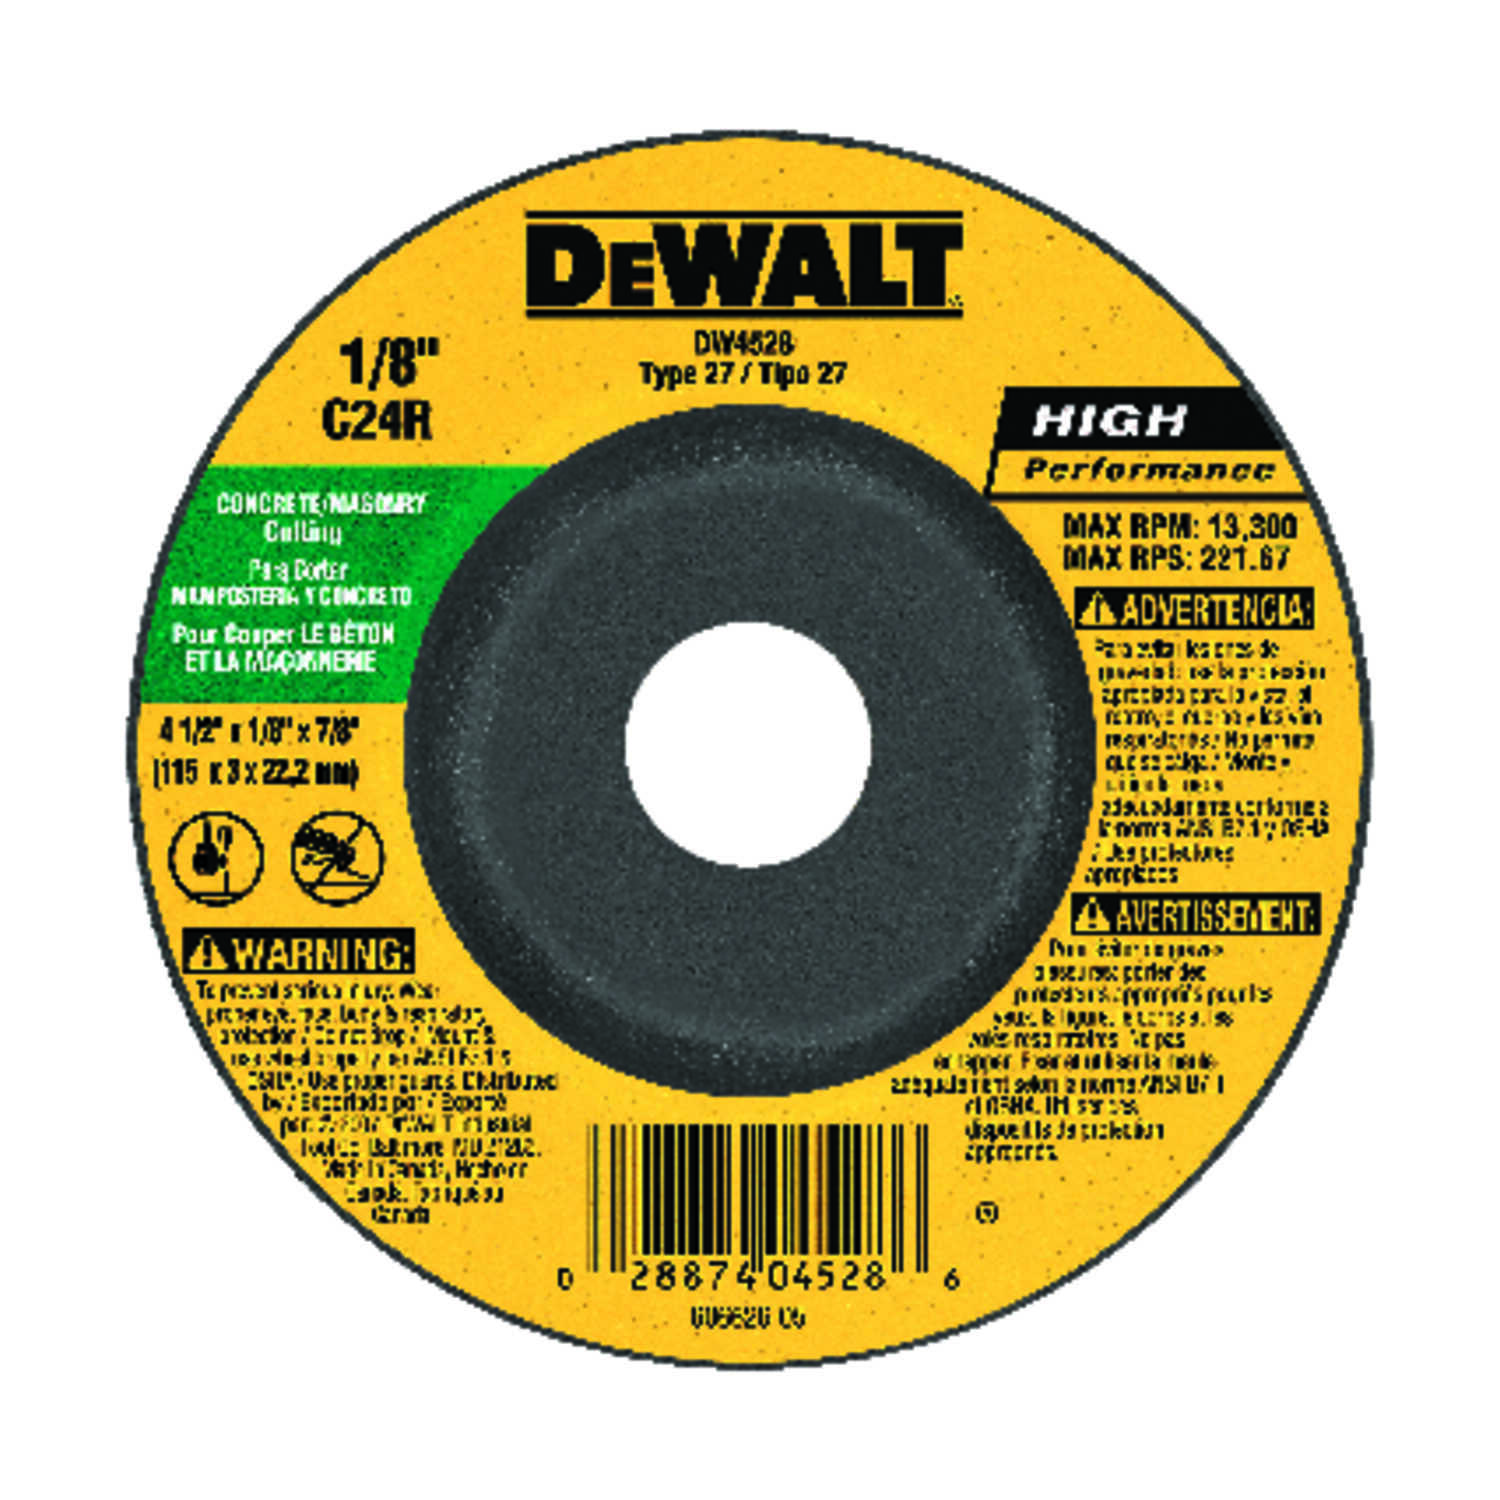 DeWalt  High Performance  4-1/2 in. 7/8 in. in.  Aluminum Oxide  Masonry Cutting Wheel  1 pc.